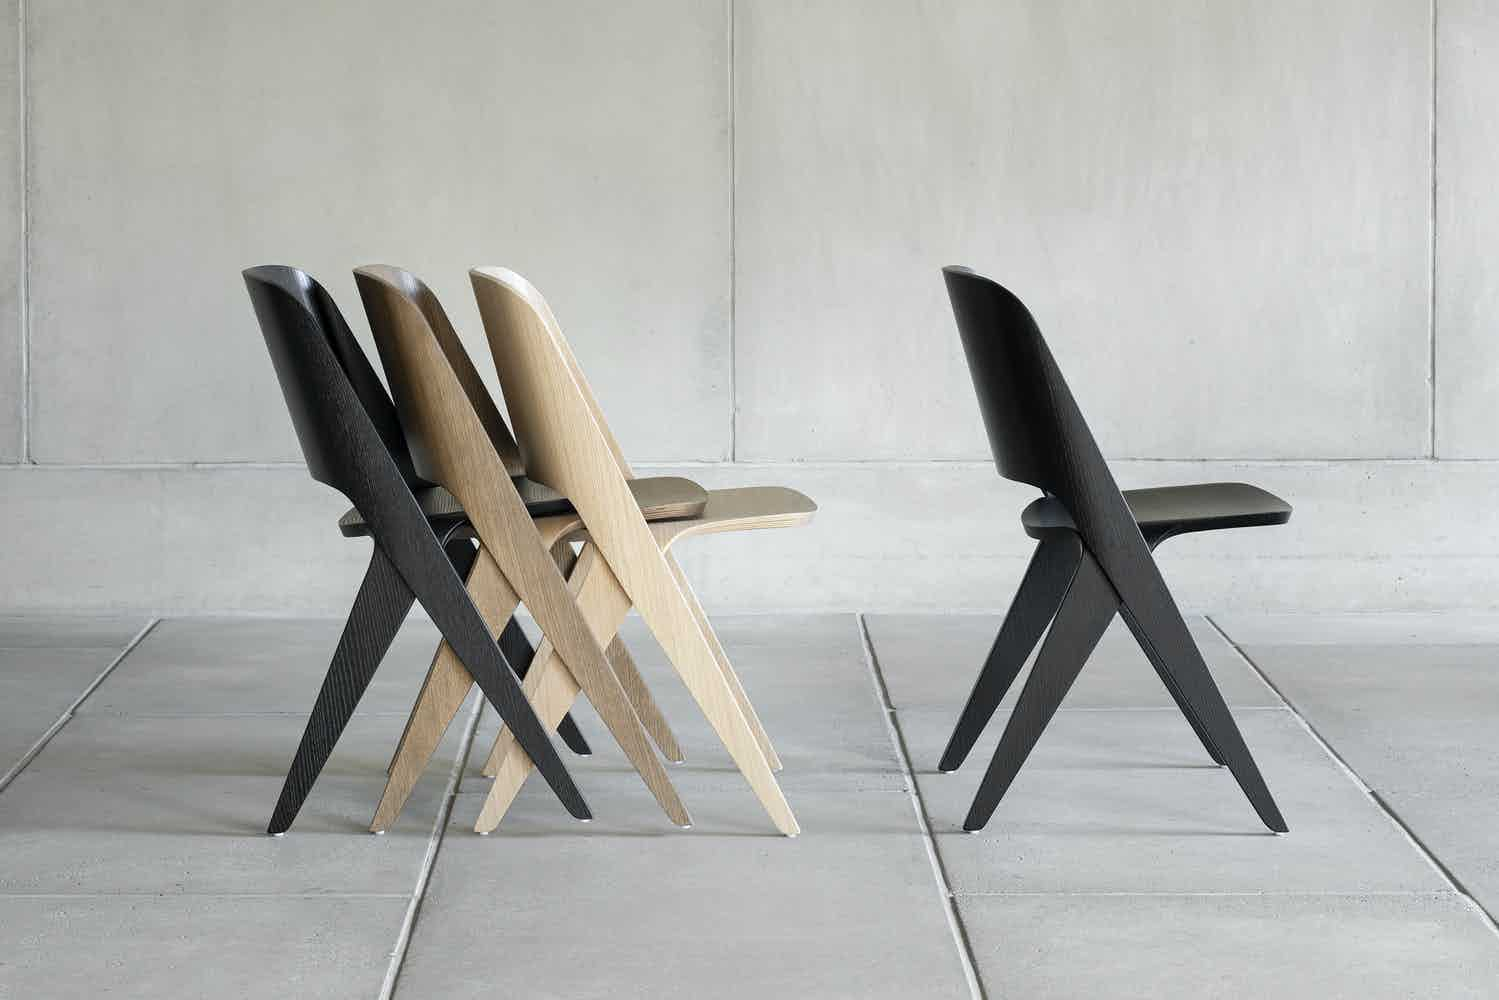 Poiat Lavitta chairs 1